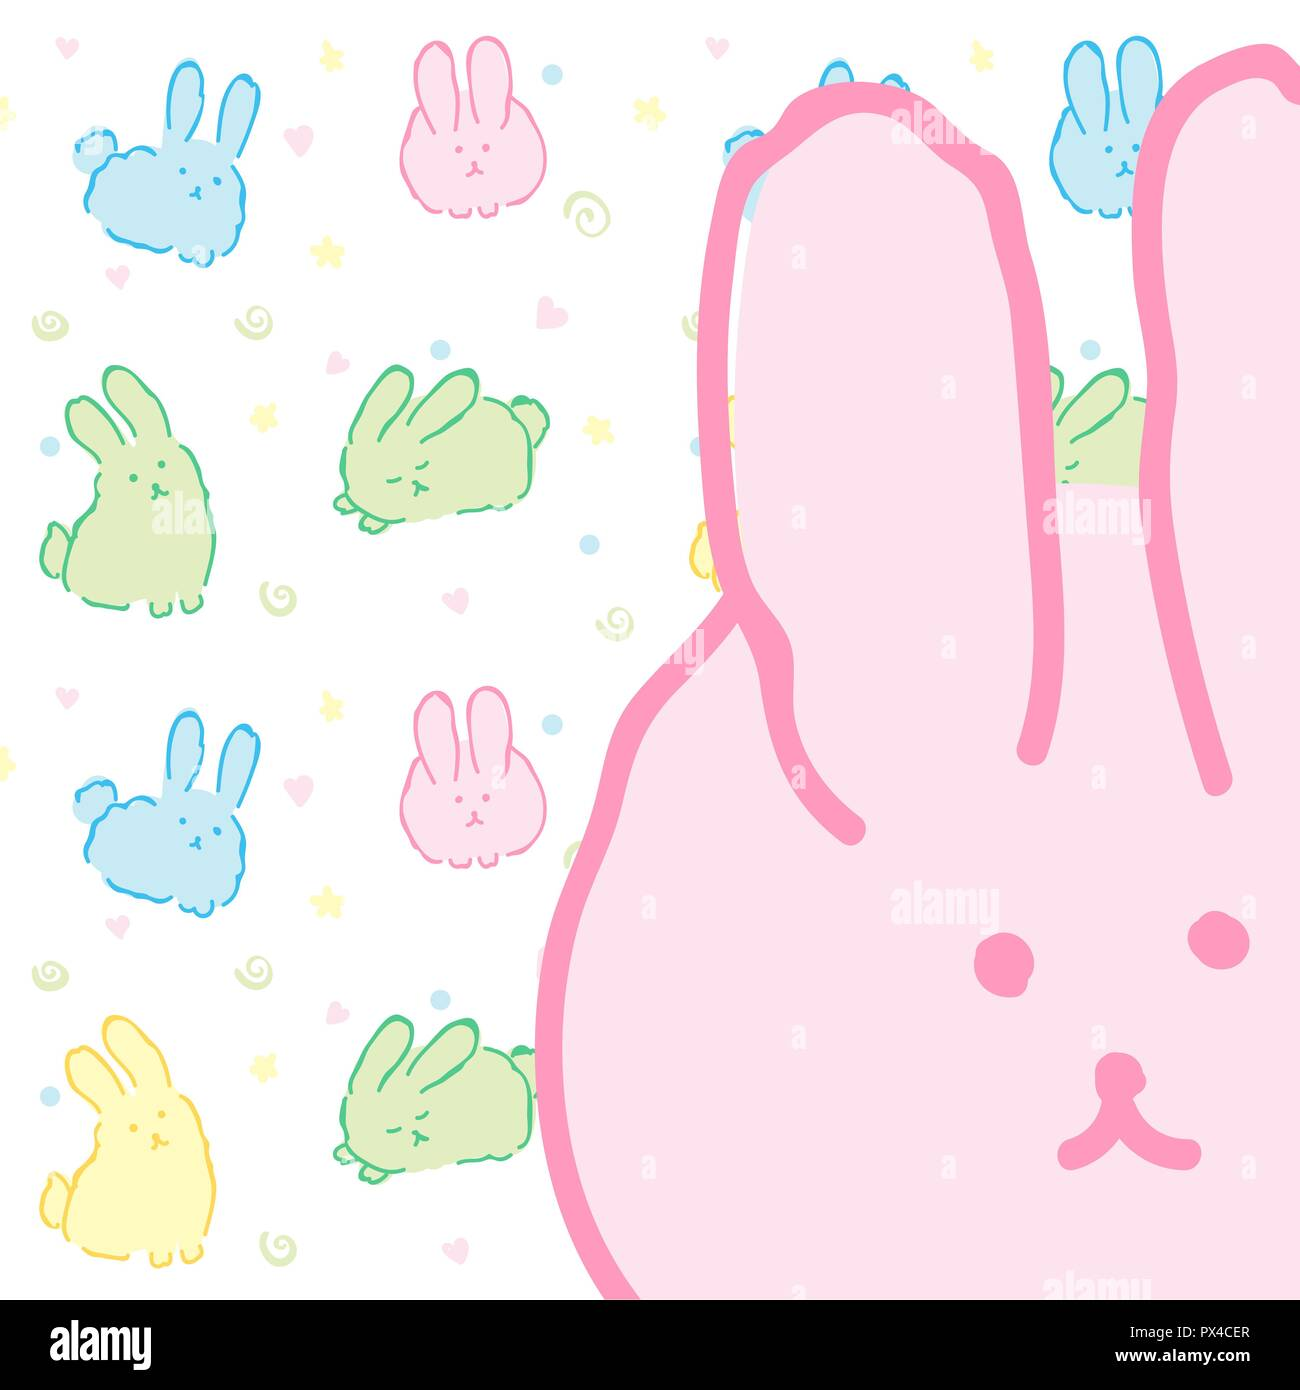 Bunnies Background Card With Pattern Cute Rabbits Fluffy Kawaii Wallpaper Pink Bunny Design Close Up Portrait Of Rabbit Easter Hare D